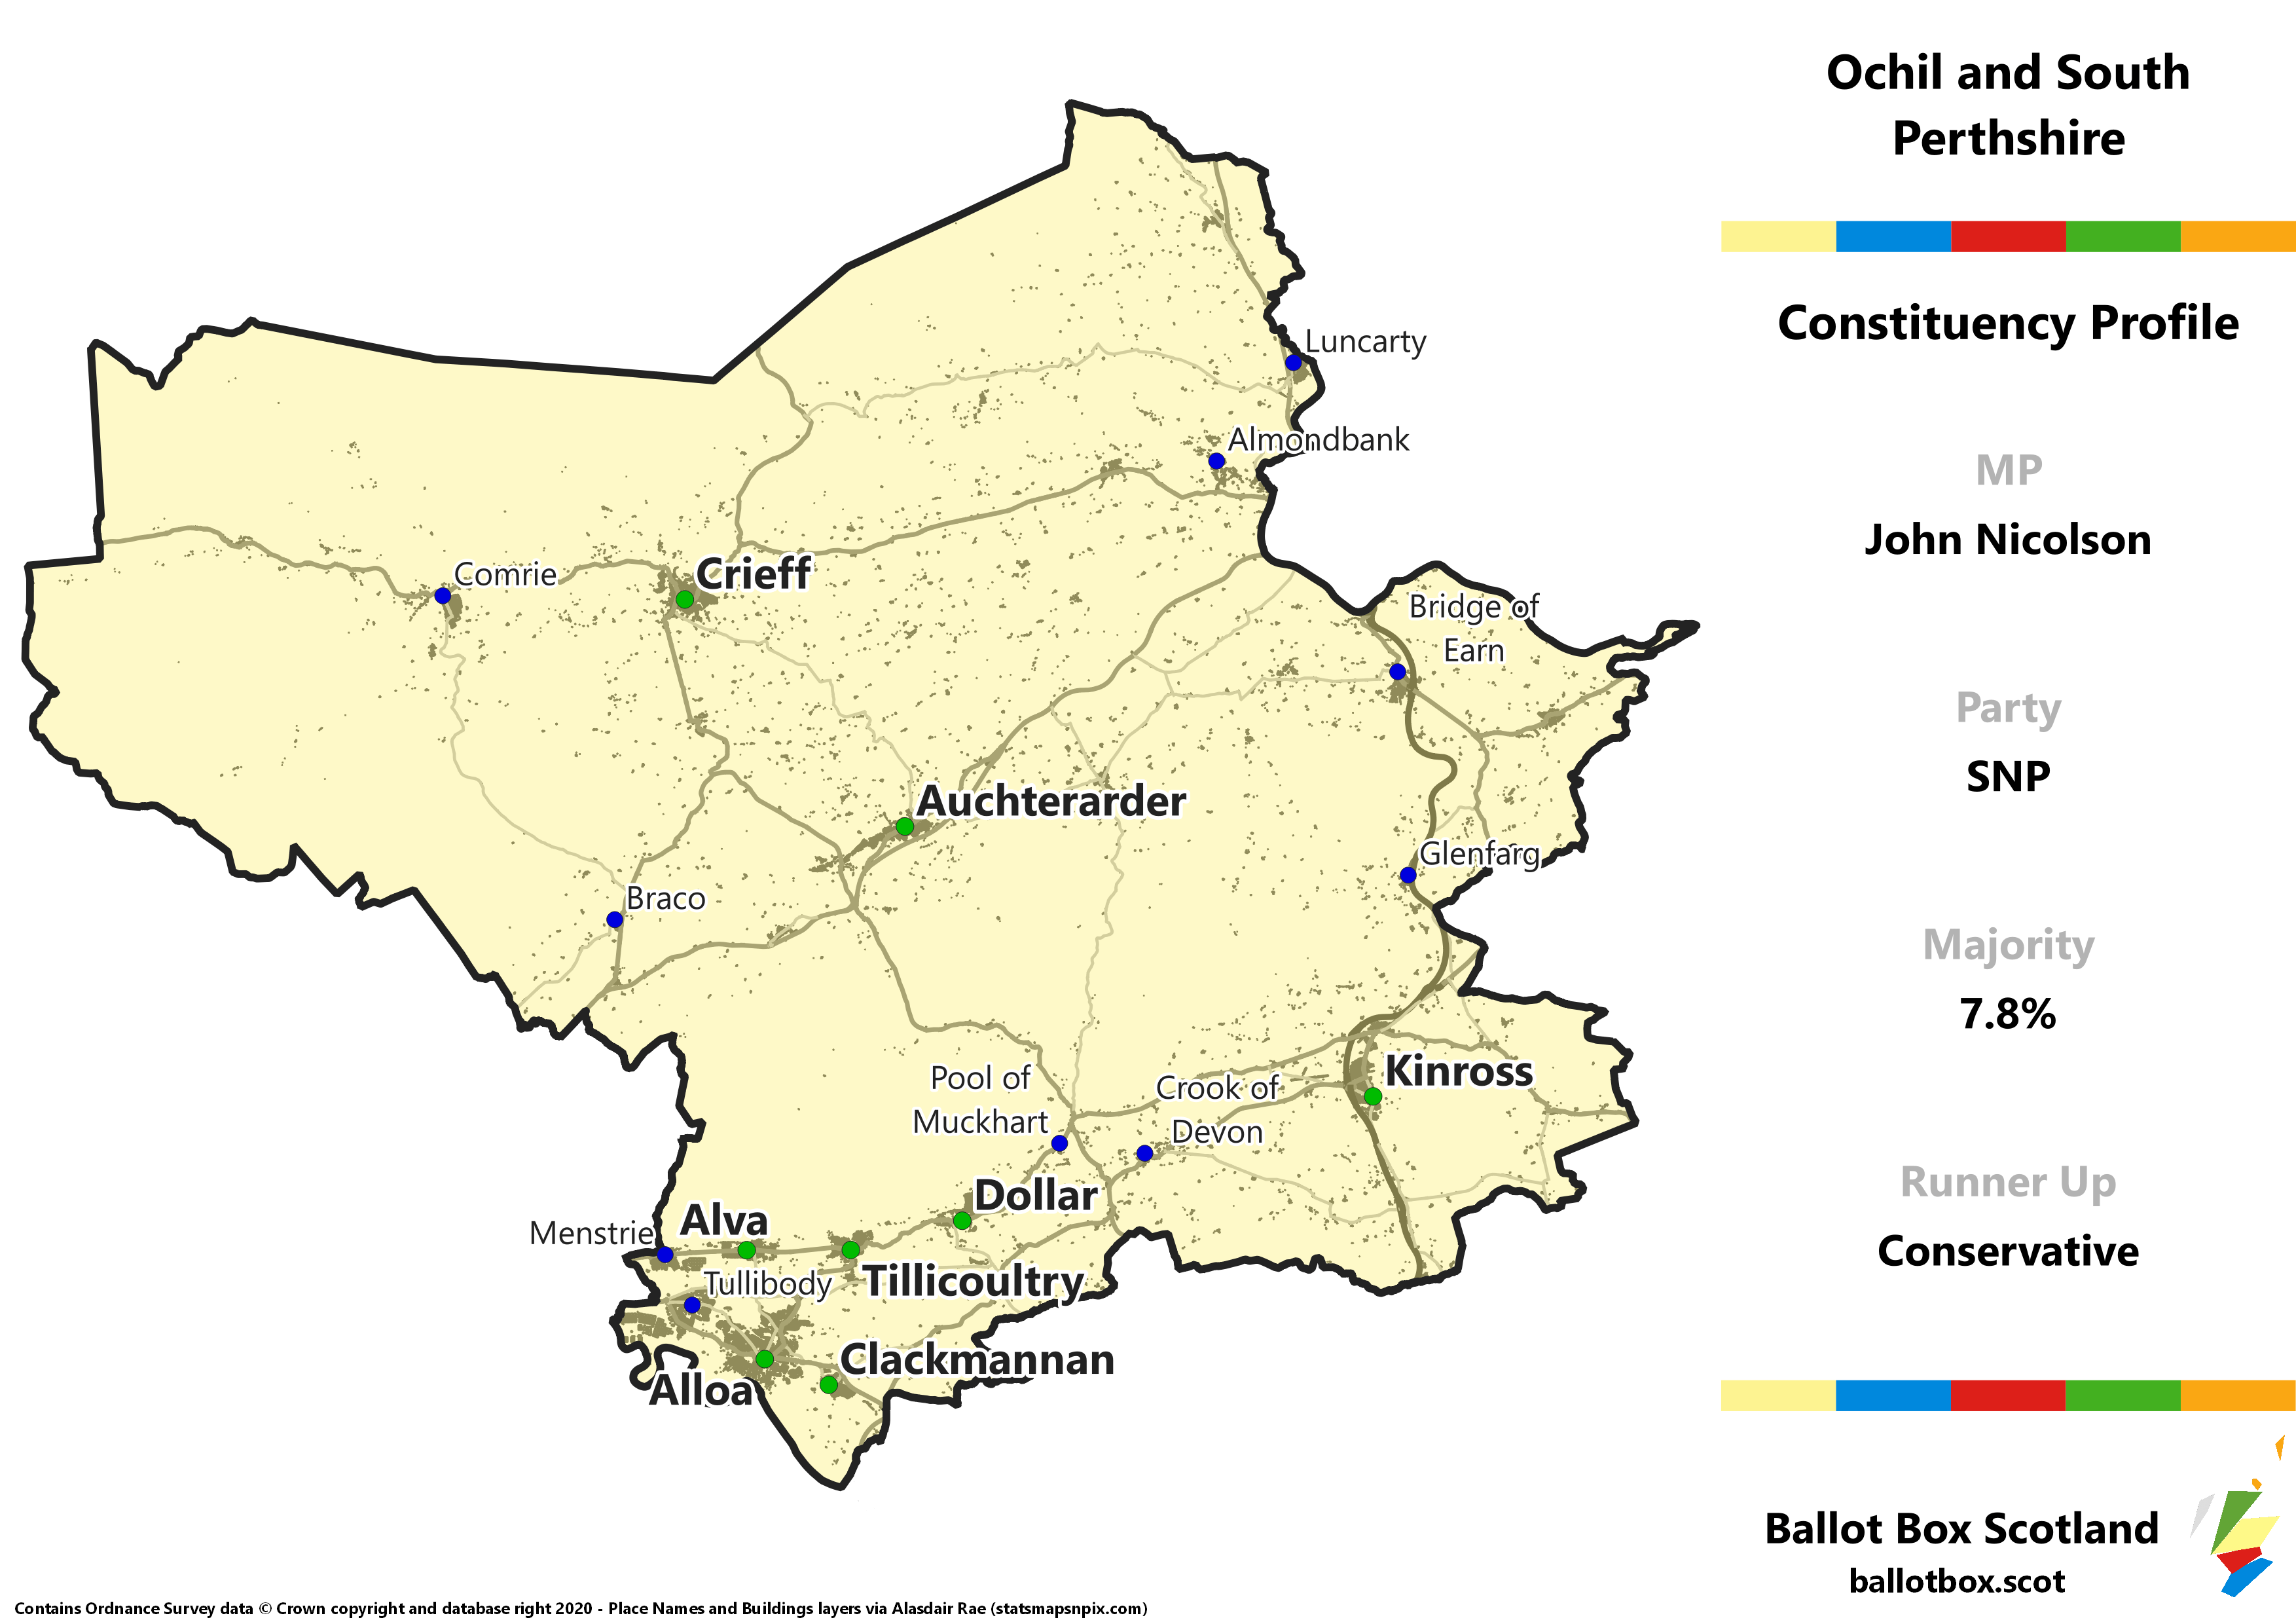 Ochil and South Perthshire Constituency Map